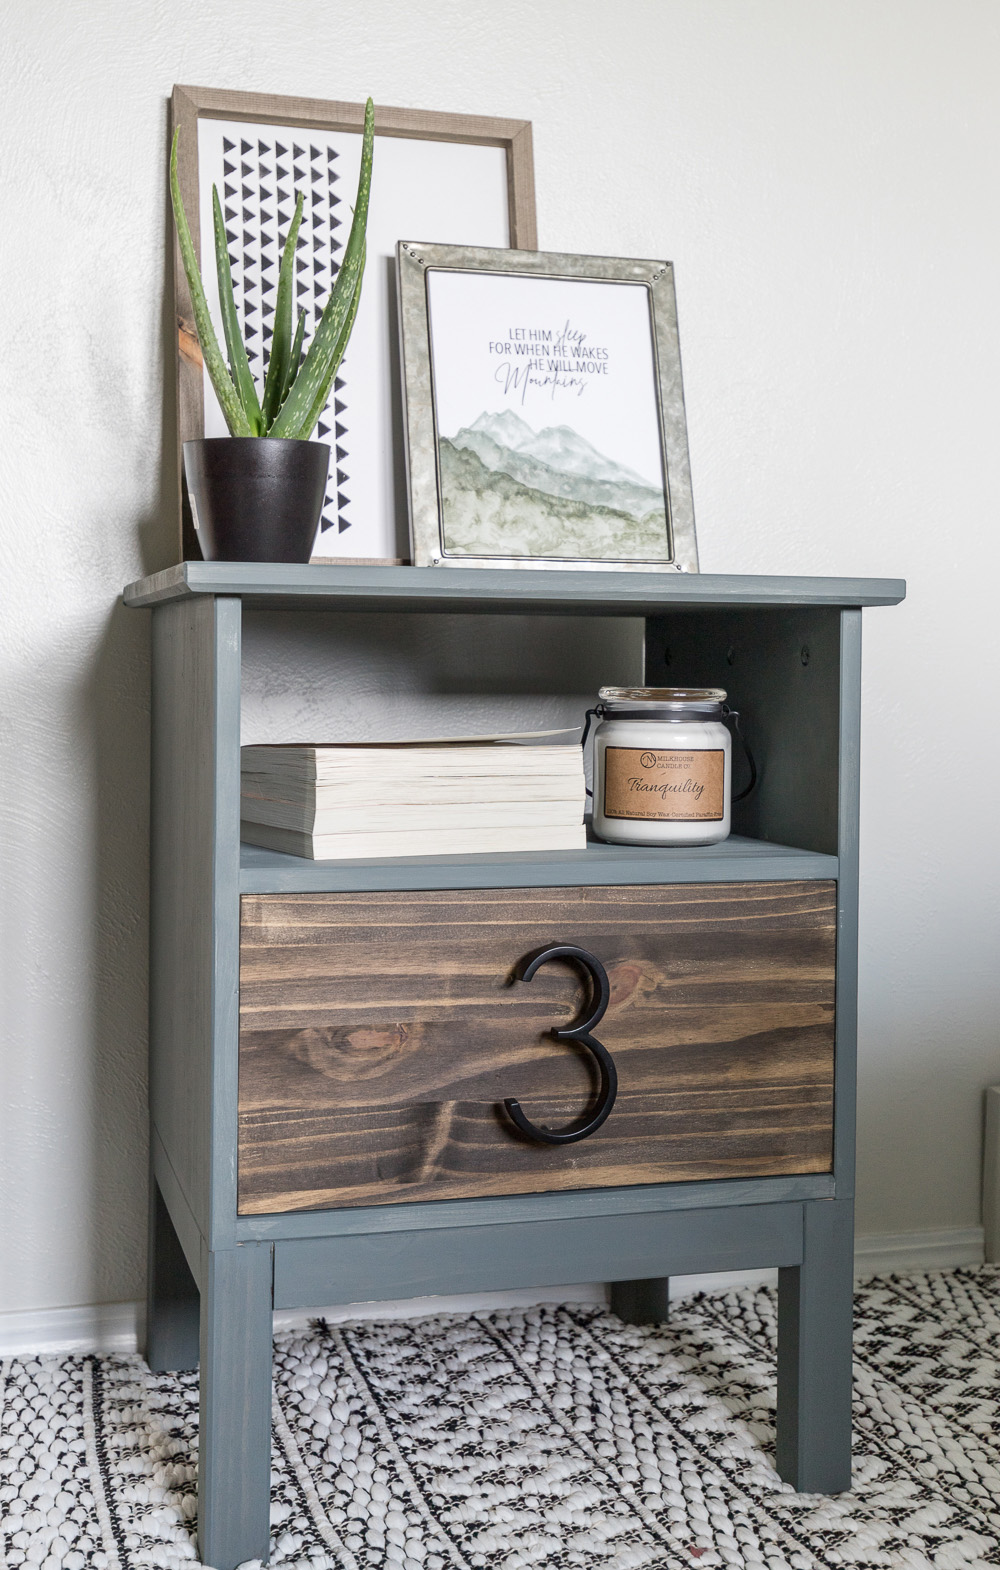 Give this basic Ikea Nightstand an easy modern makeover in just a few hours following the tutorial for this Tarva Nightstand Hack!